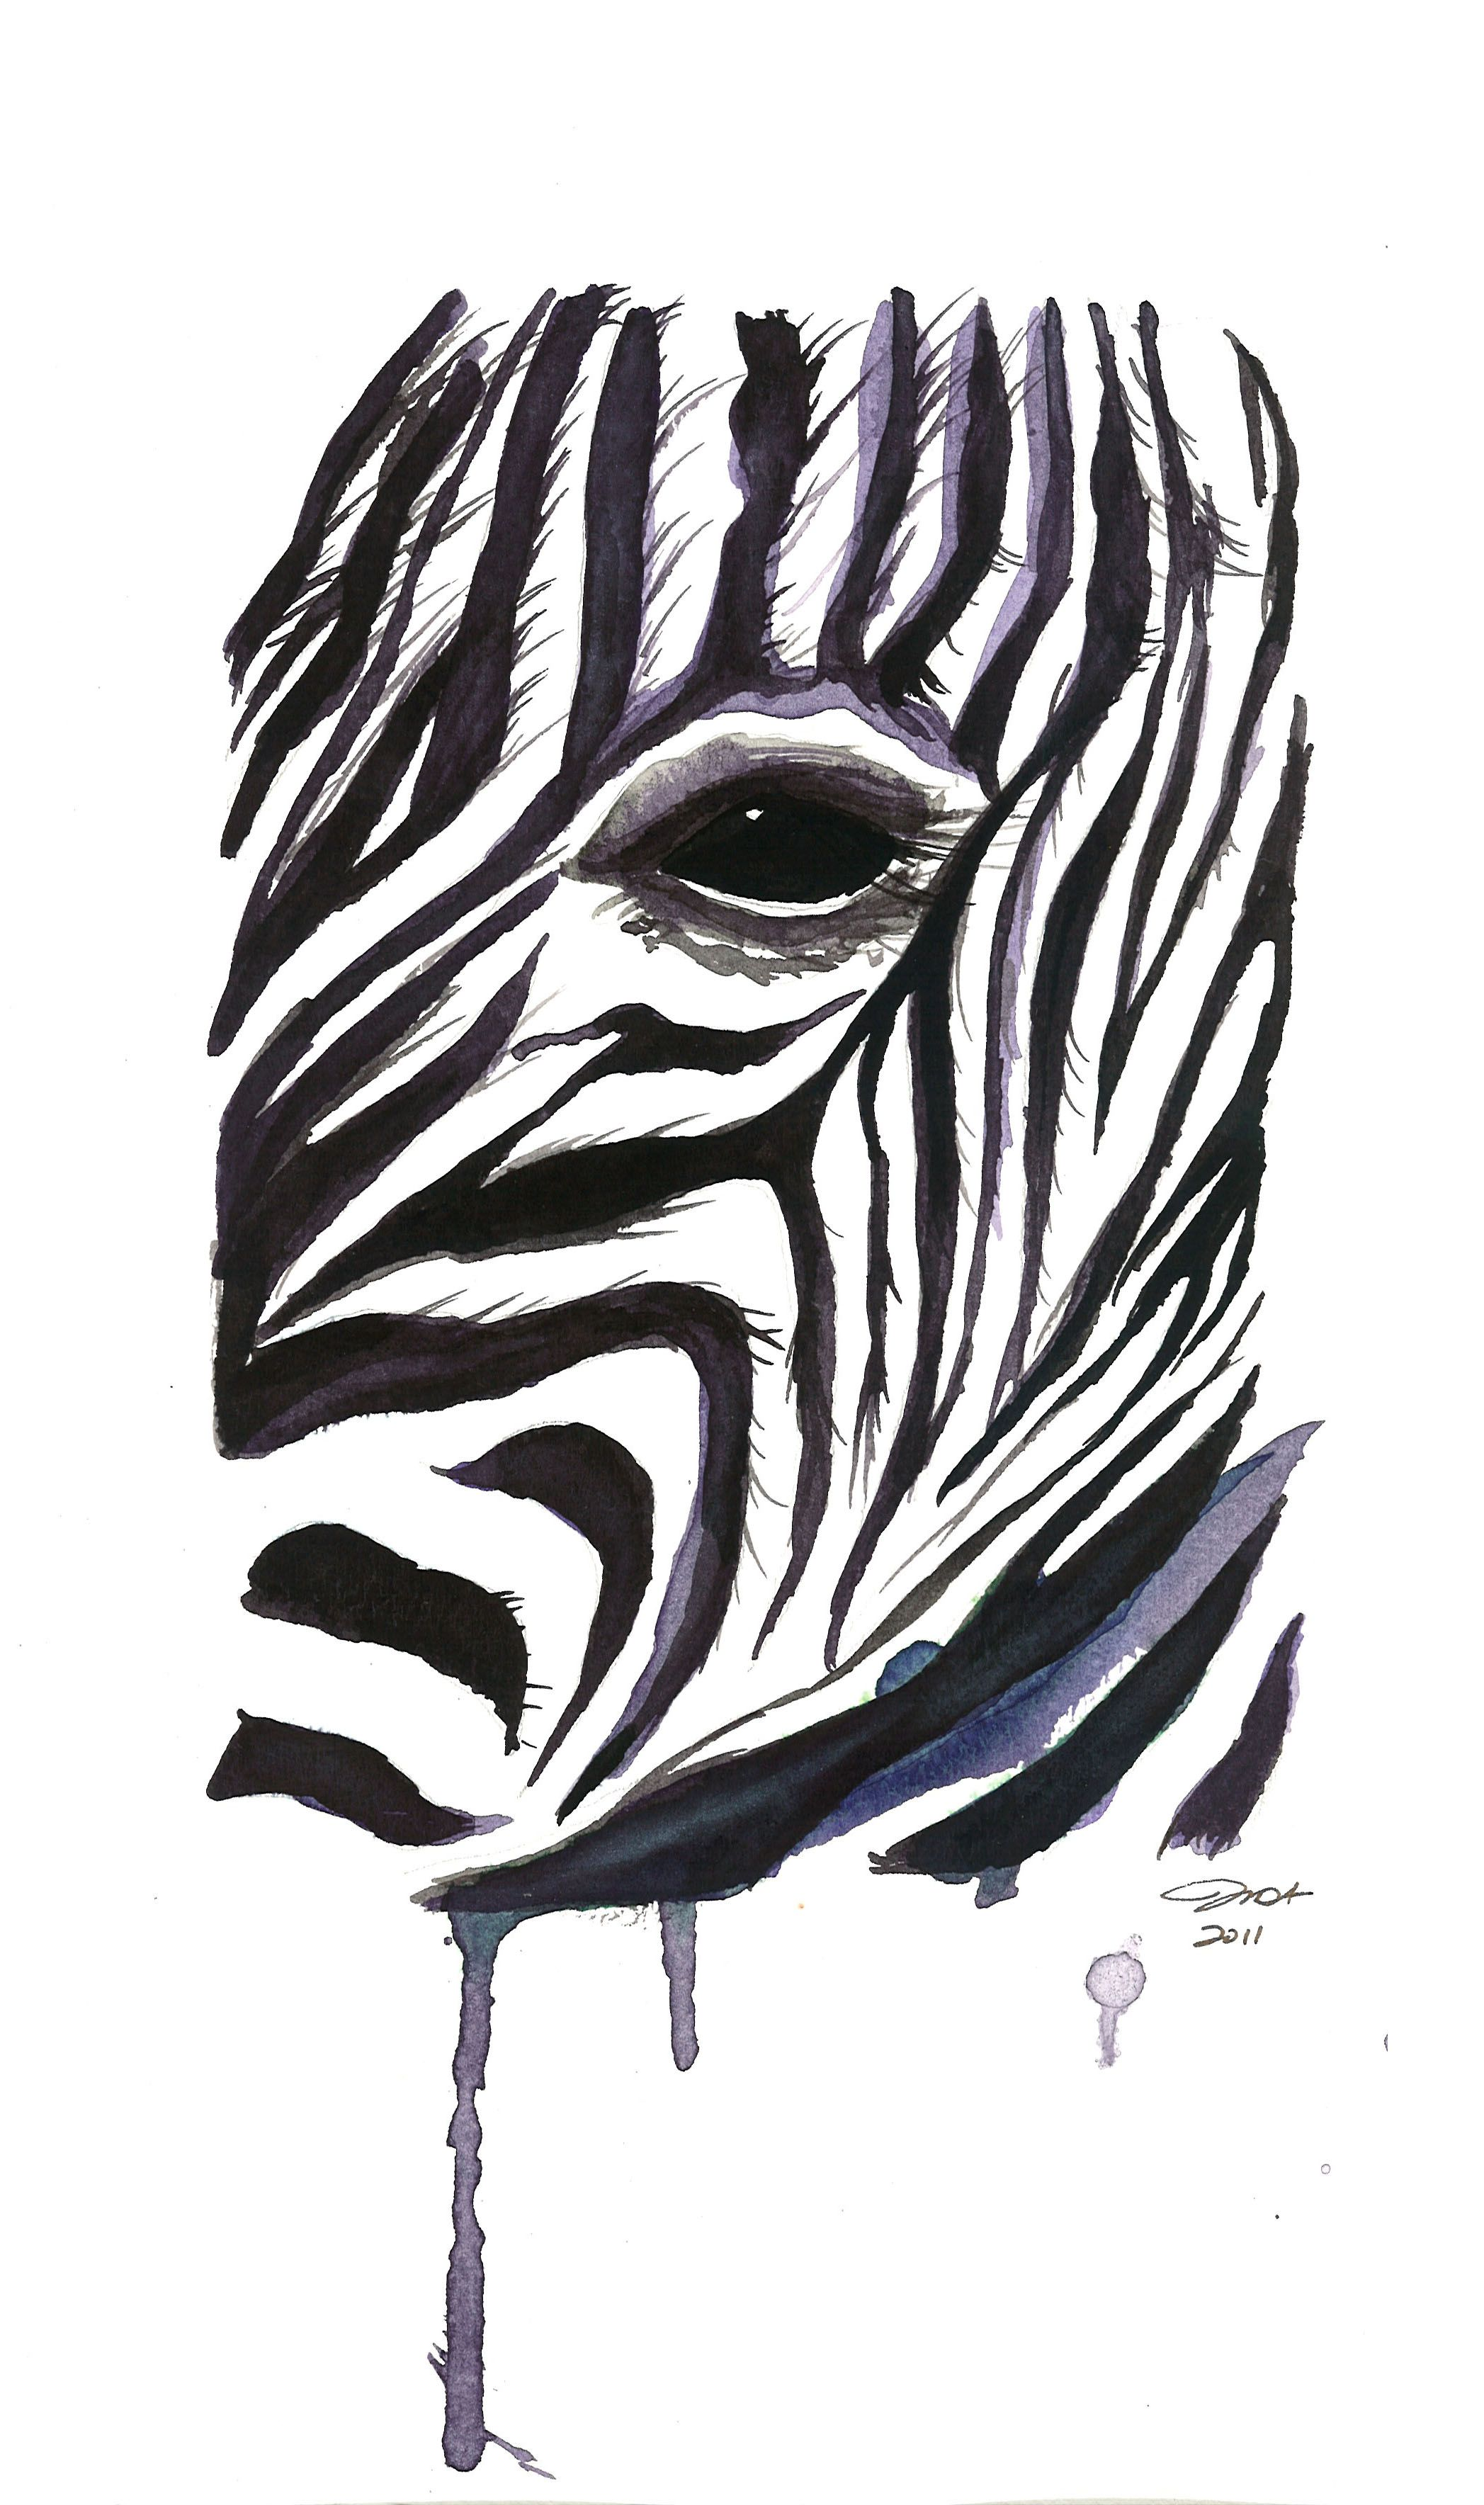 I painted this zebra last night in my teen art class I teach. Love zebras! #zebra #watercolor by Jessica Durrant